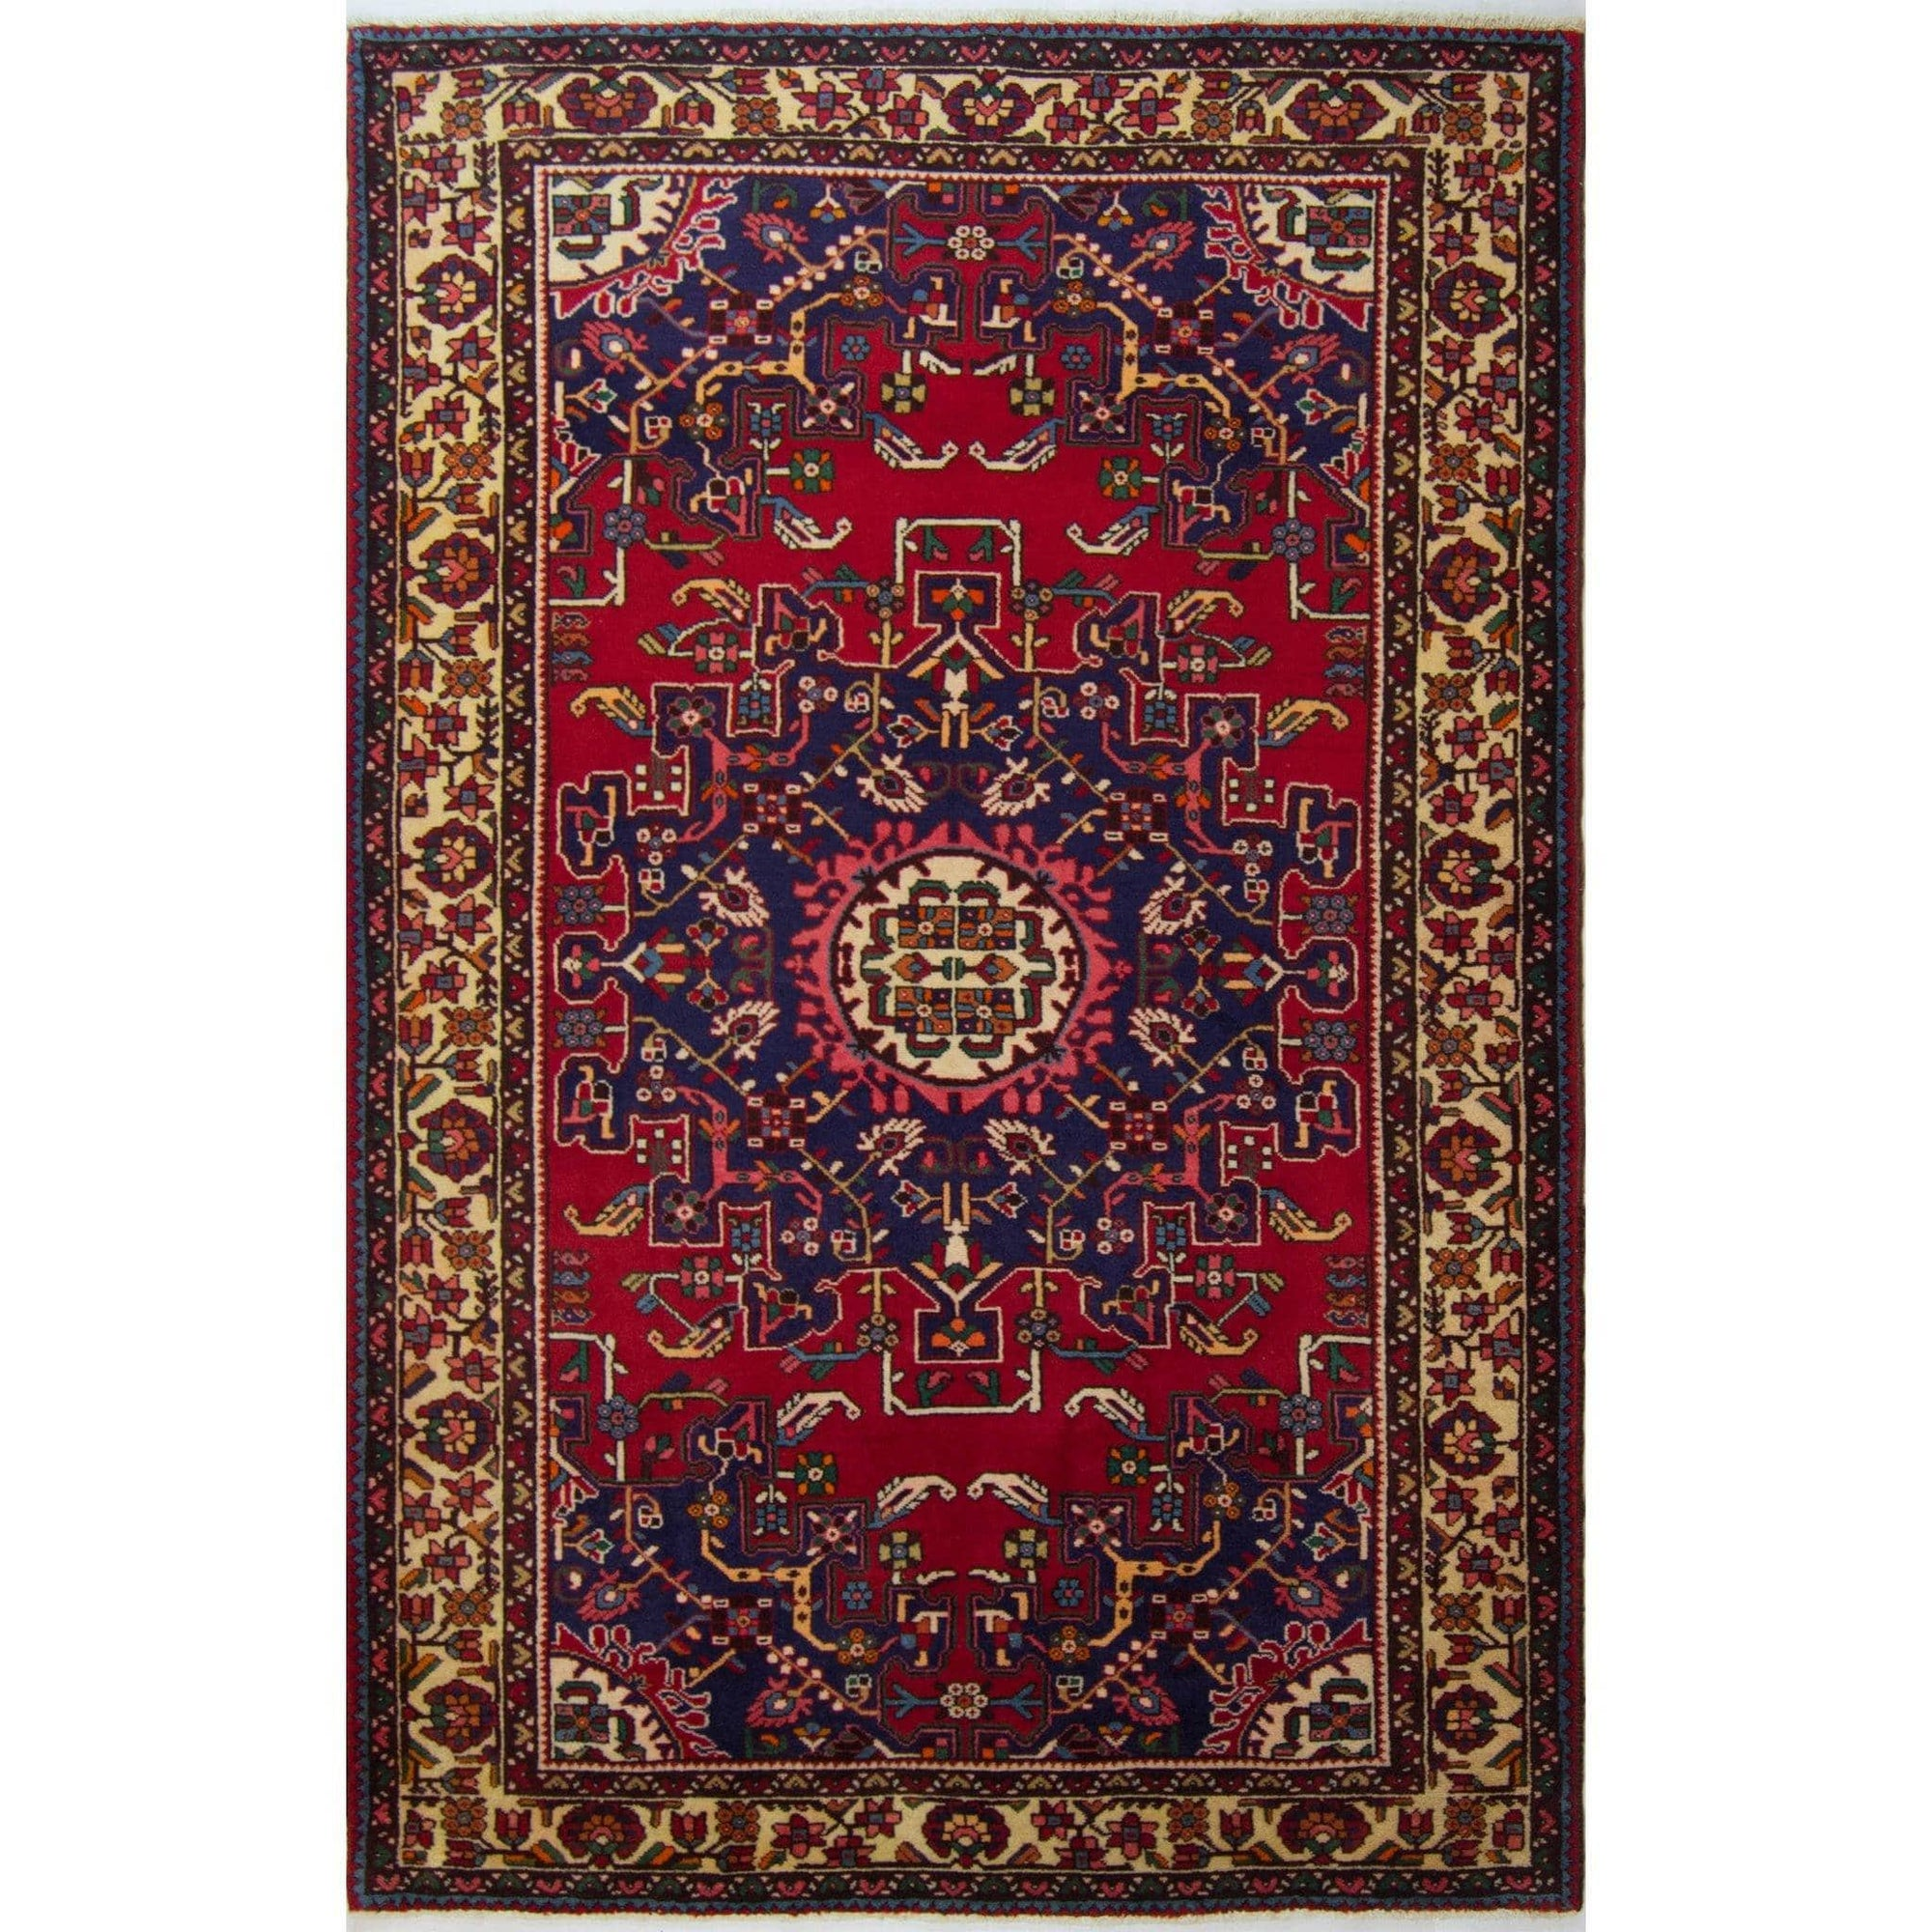 Authentic Hand-knotted Wool Persian Tafresh Rug 140cm x 204cm Persian-Rug | House-of-Haghi | NewMarket | Auckland | NZ | Handmade Persian Rugs | Hand Knotted Persian Rugs